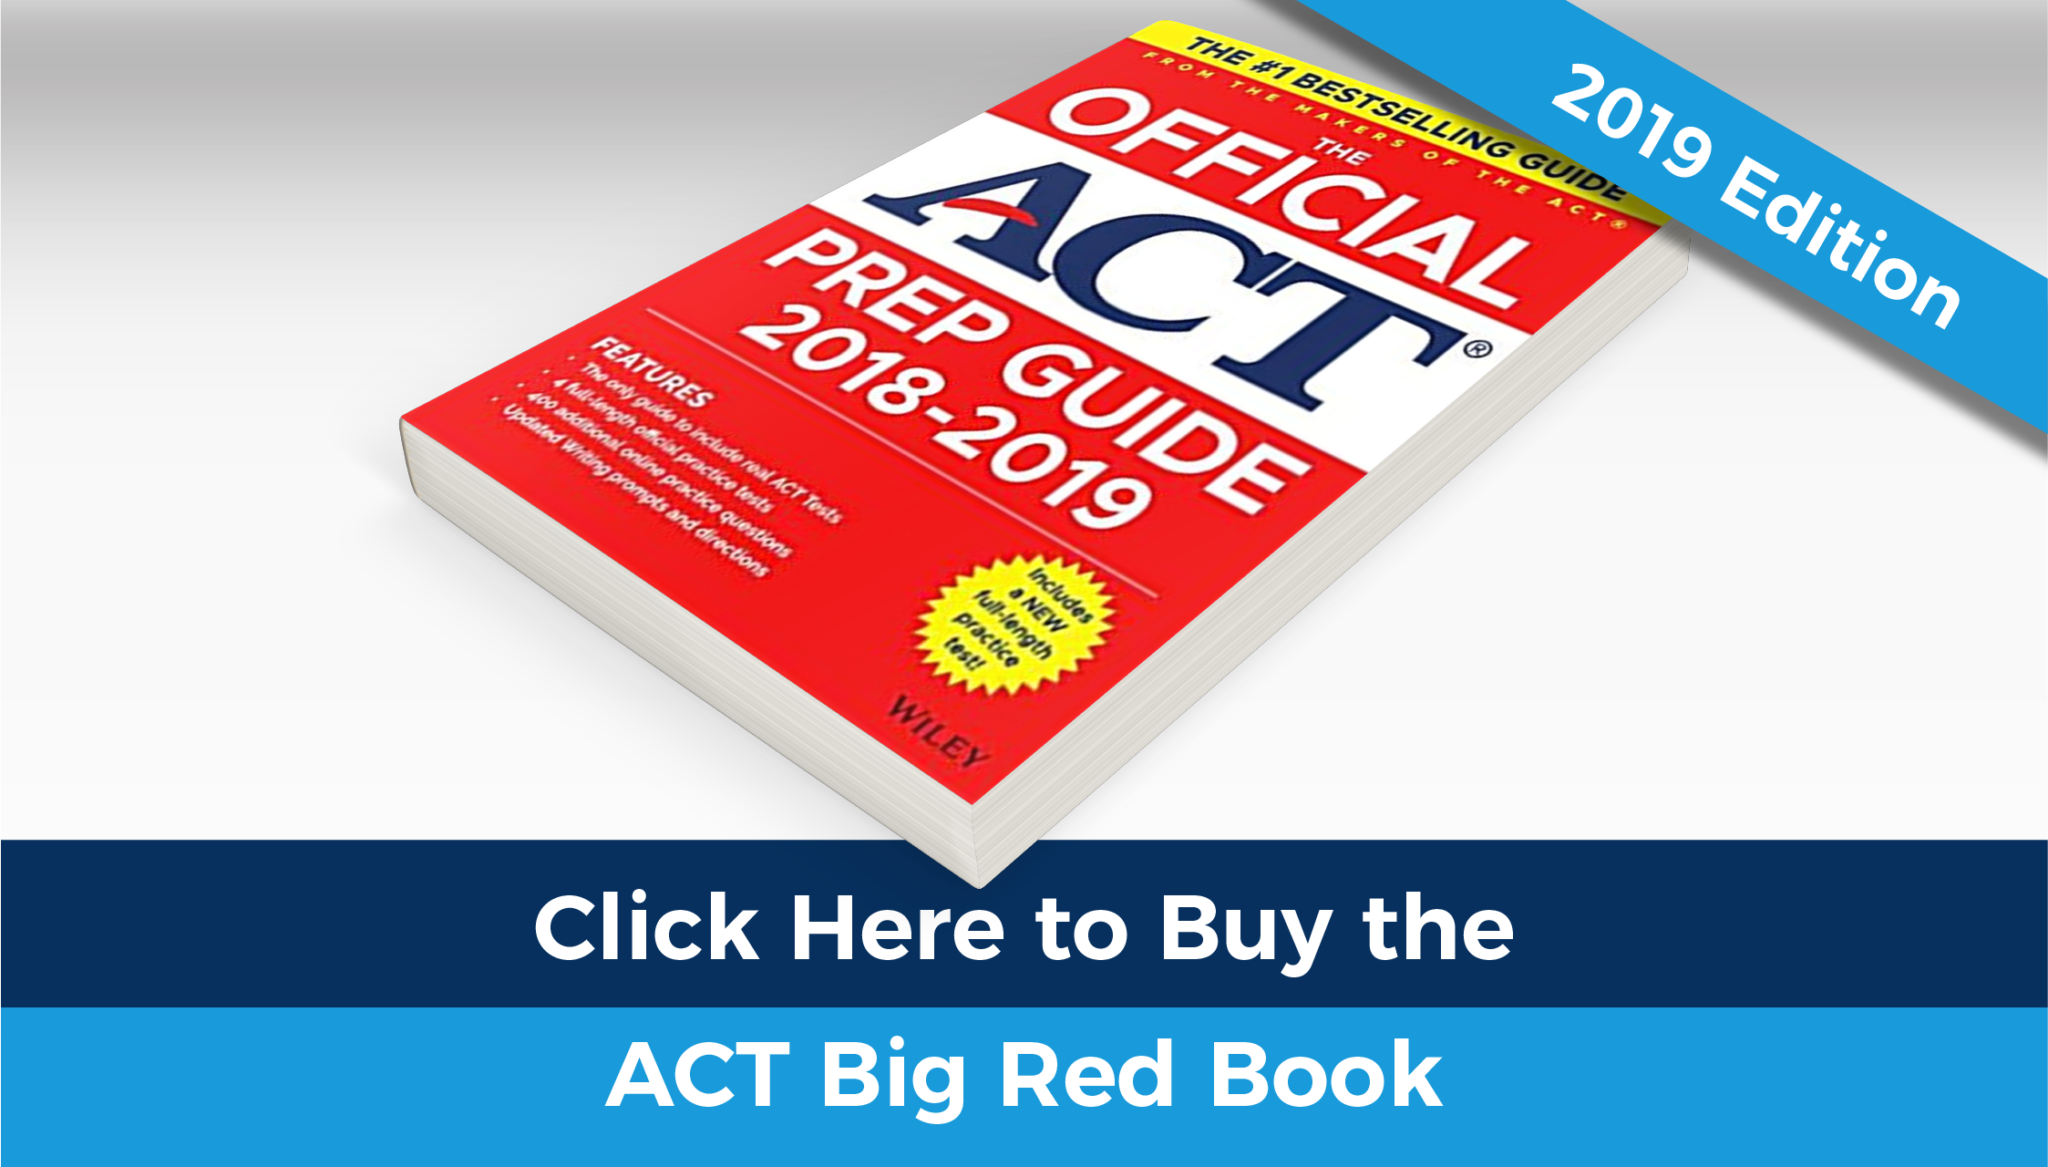 ACT Big Red Book